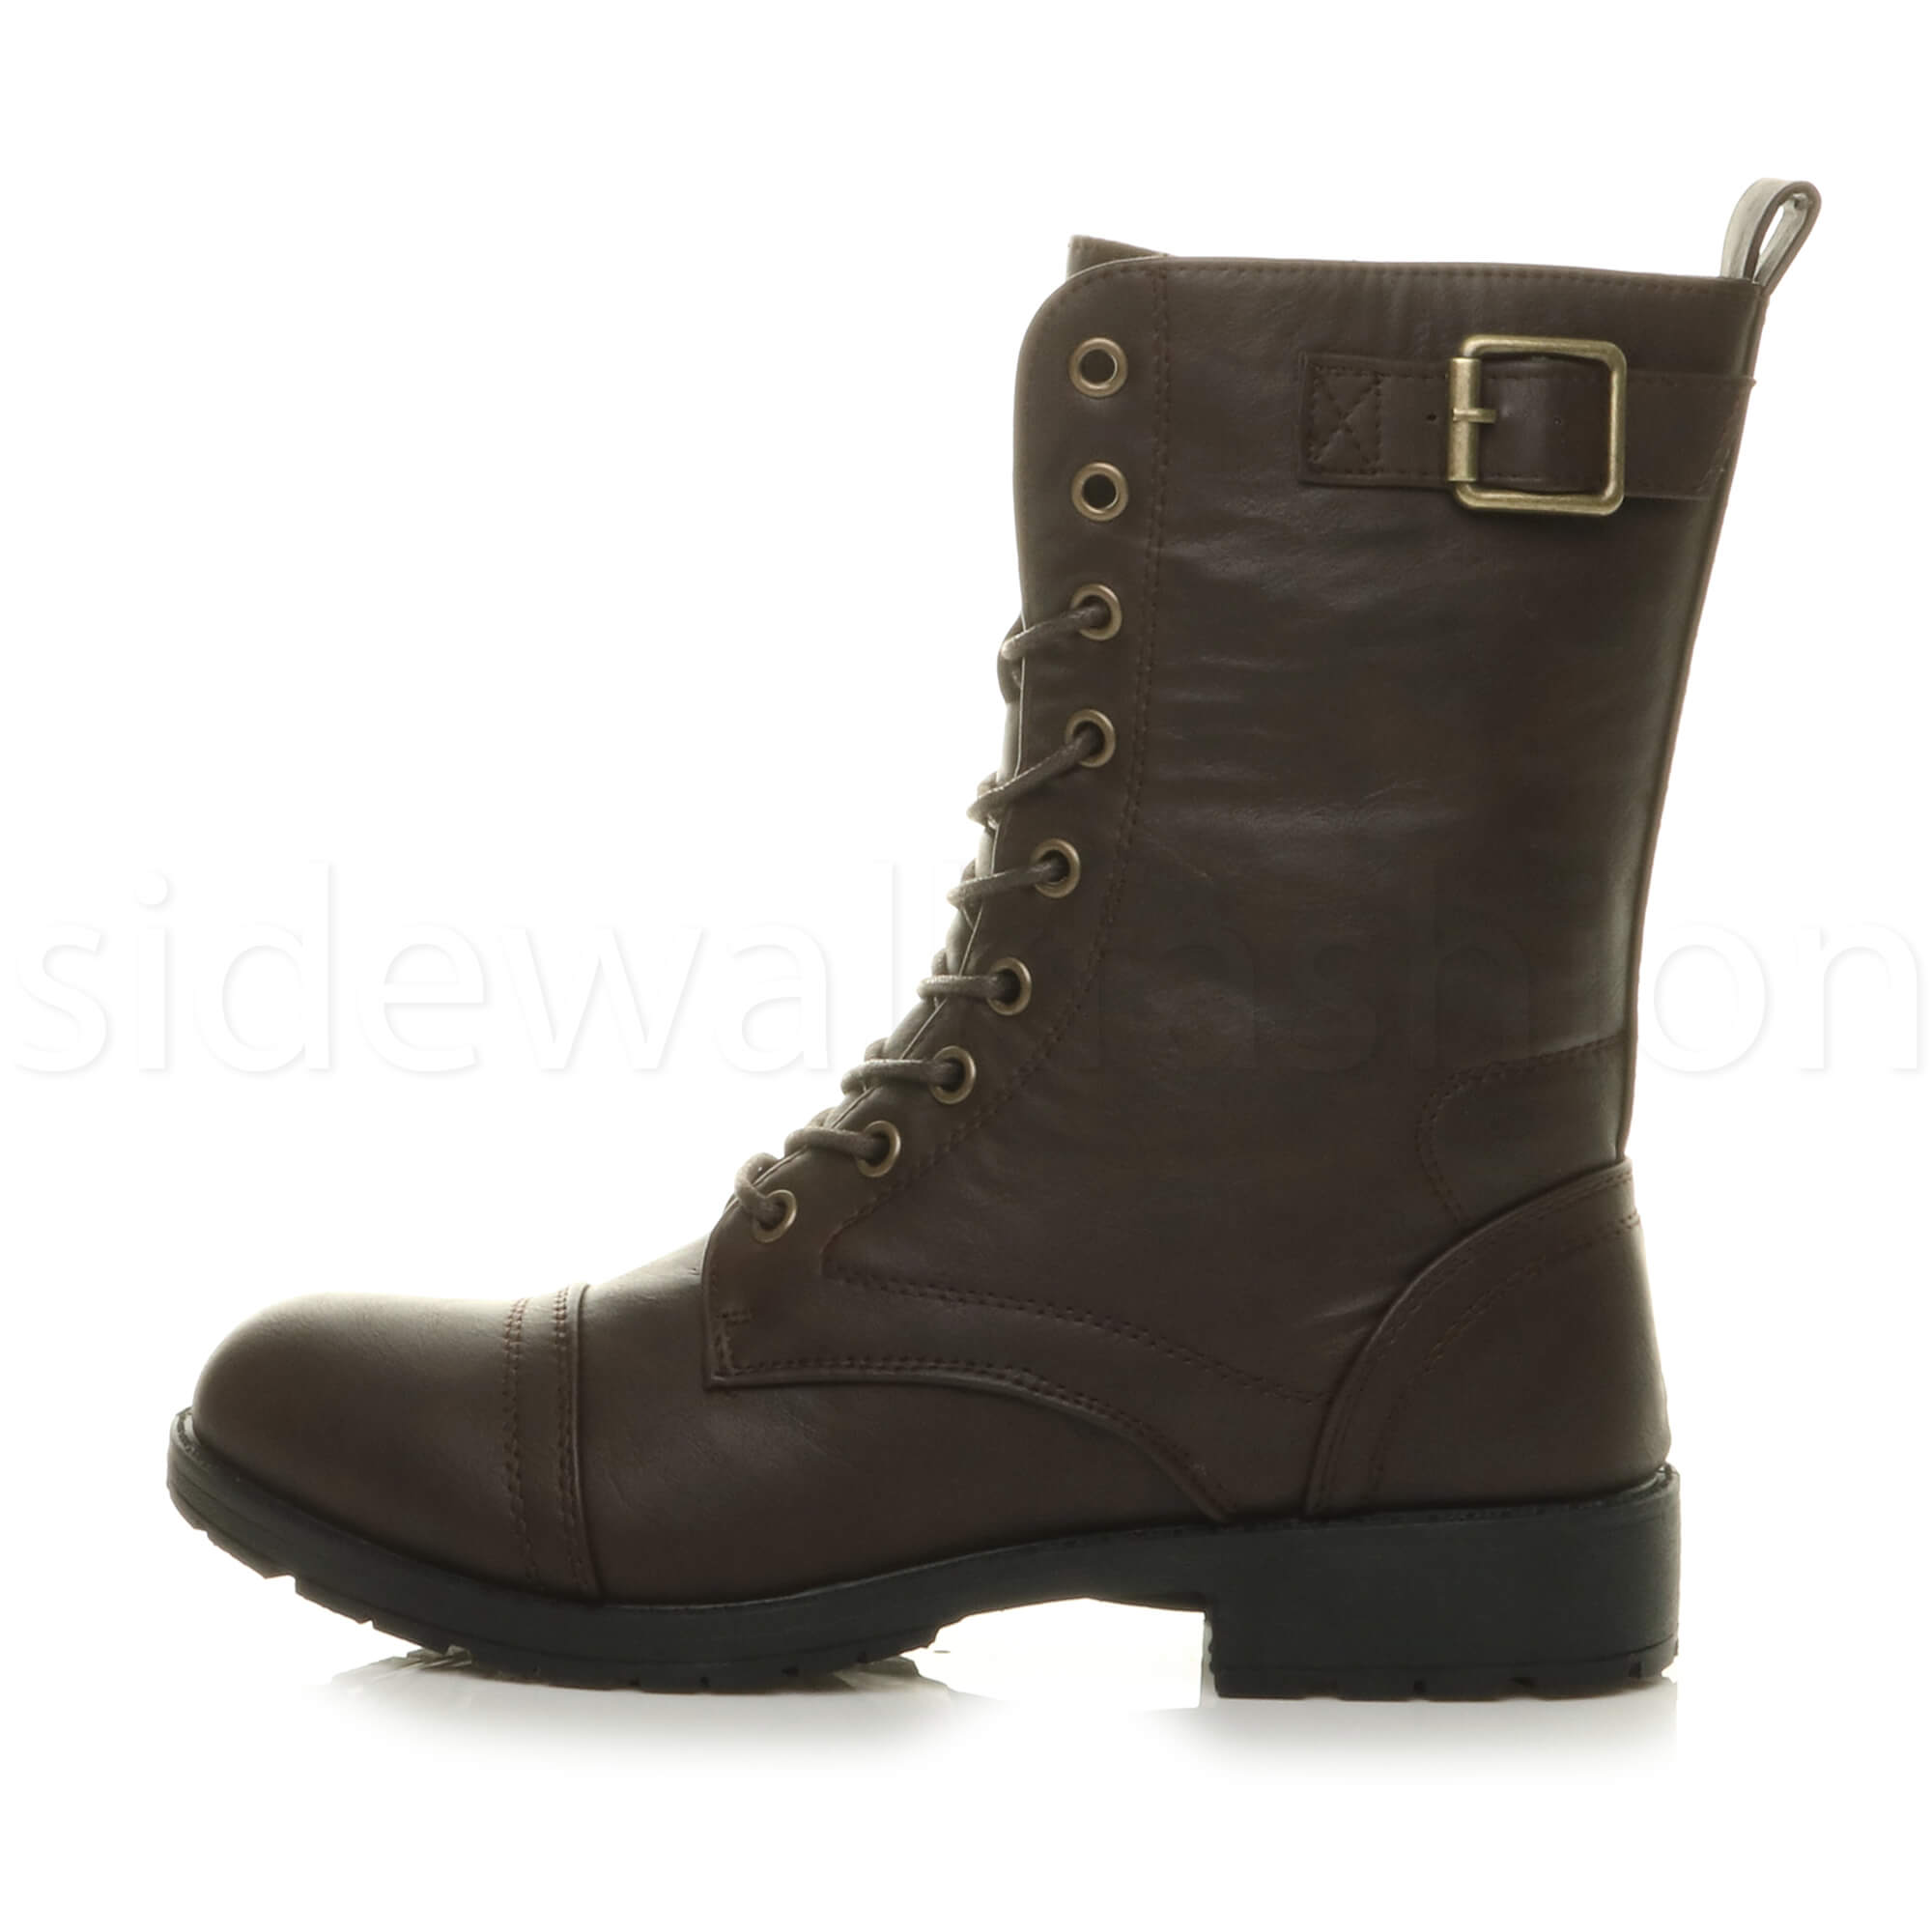 Womens-ladies-low-heel-flat-lace-up-zip-combat-biker-military-ankle-boots-size thumbnail 43